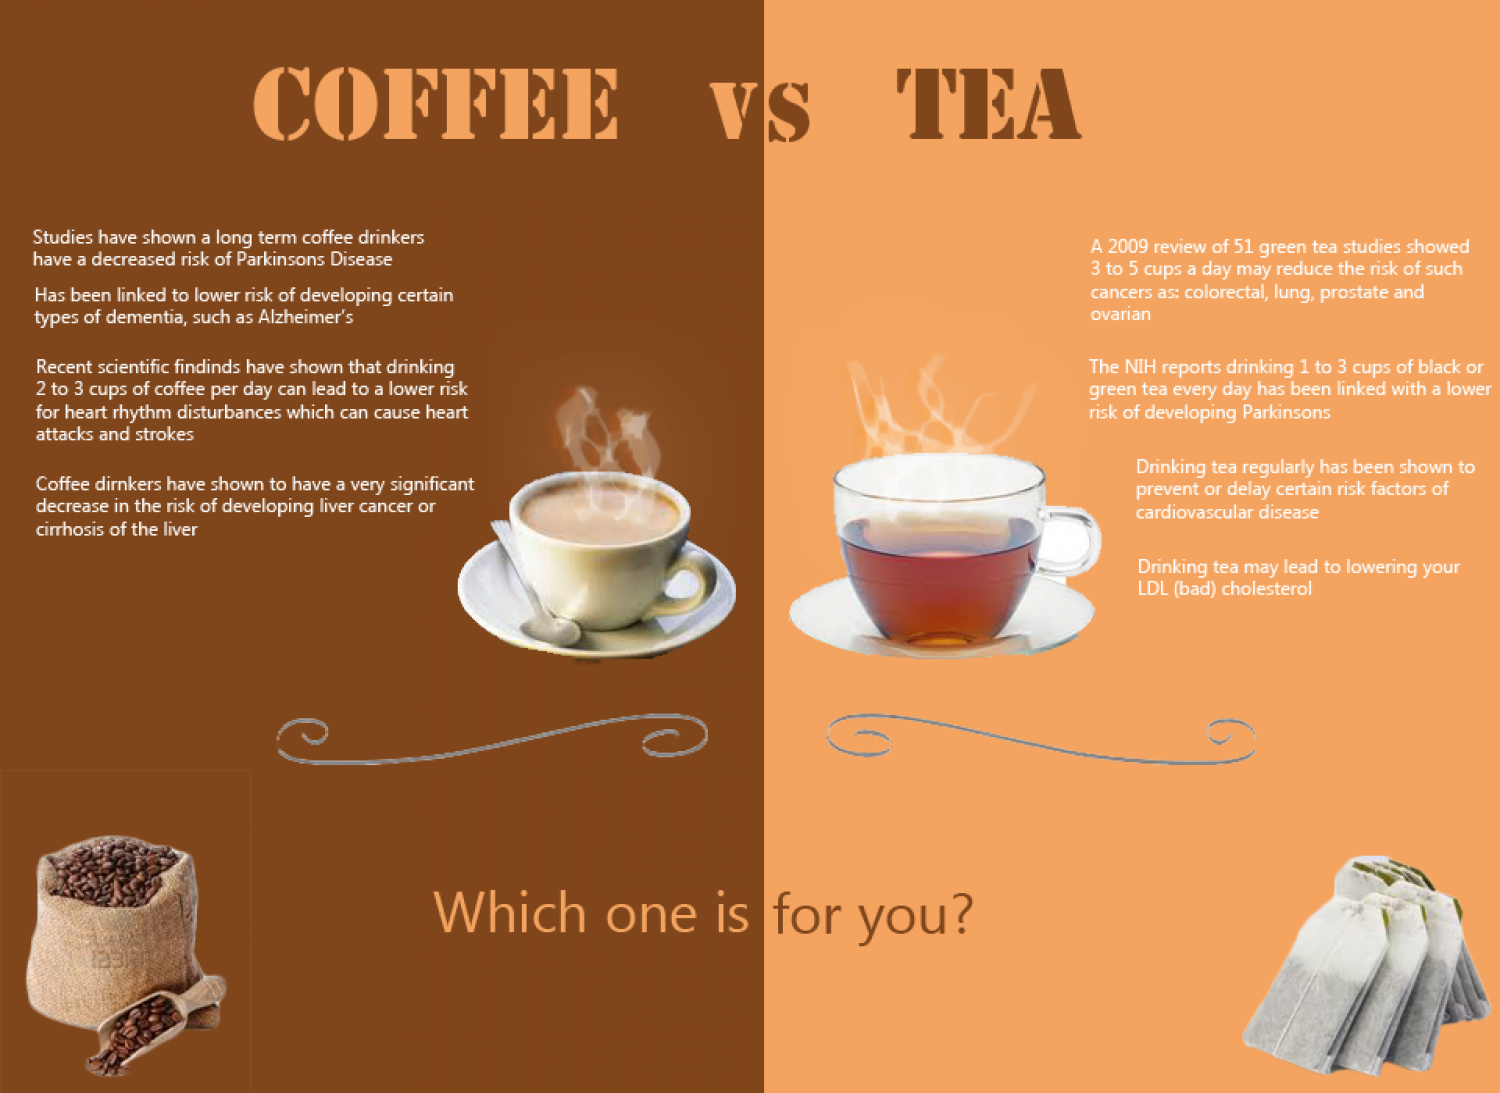 Caffeine In Hot Tea Vs Coffee